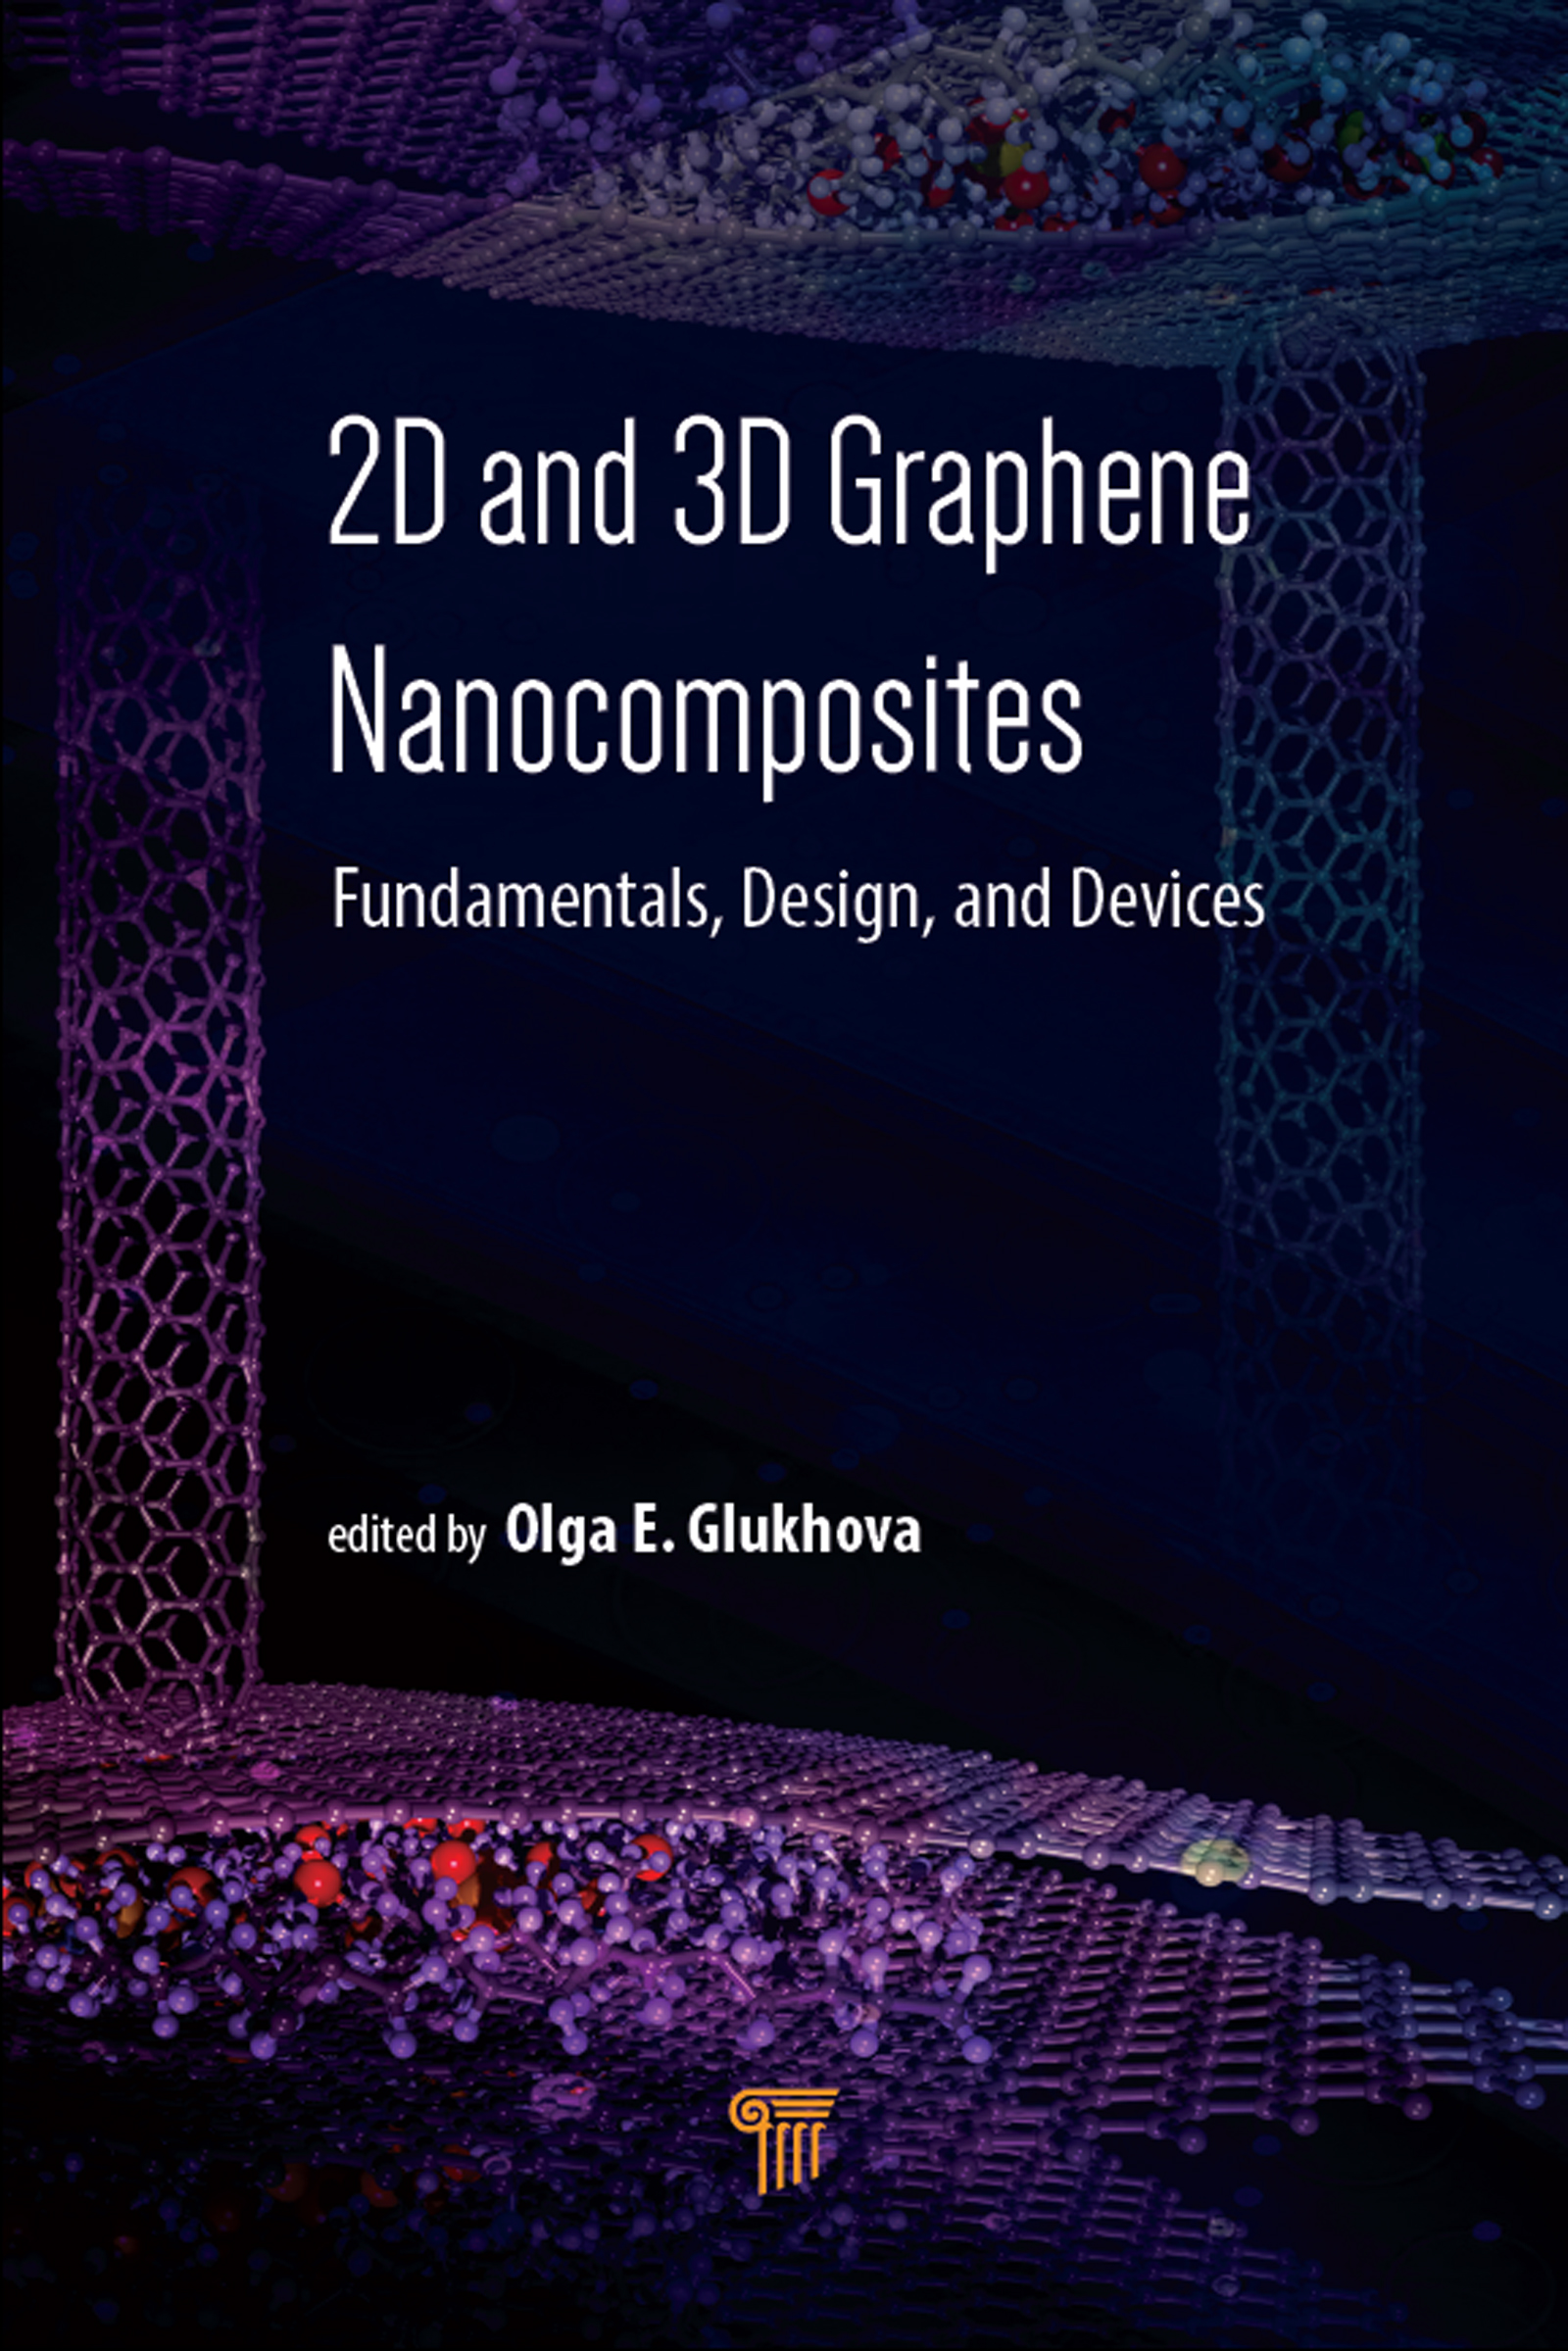 2D and 3D Graphene Nanocomposites: Fundamentals, Design, and Devices book cover